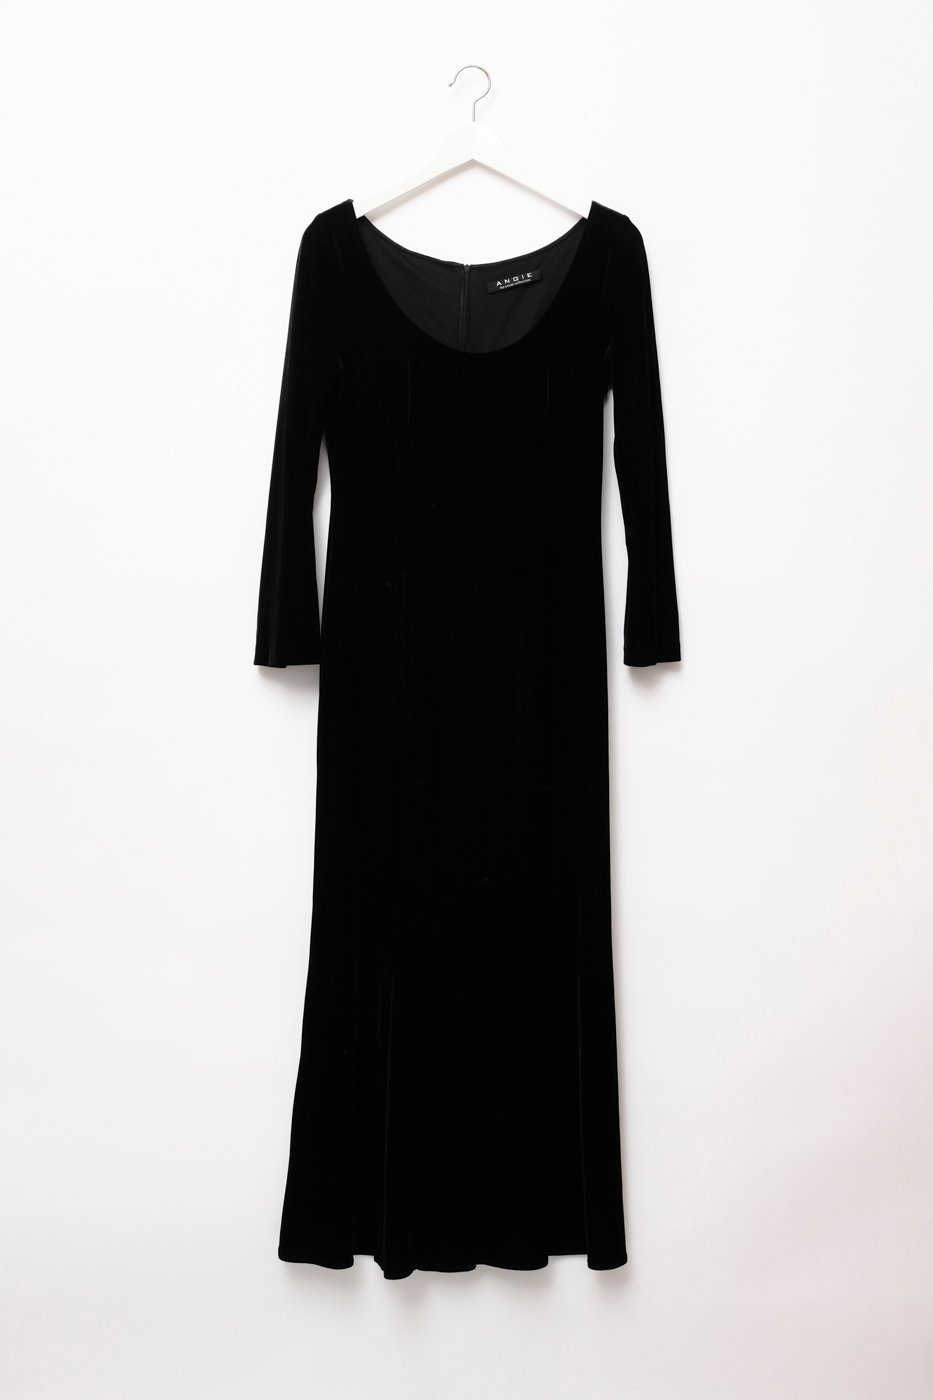 0323_VELVET BLACK LONG DRESS